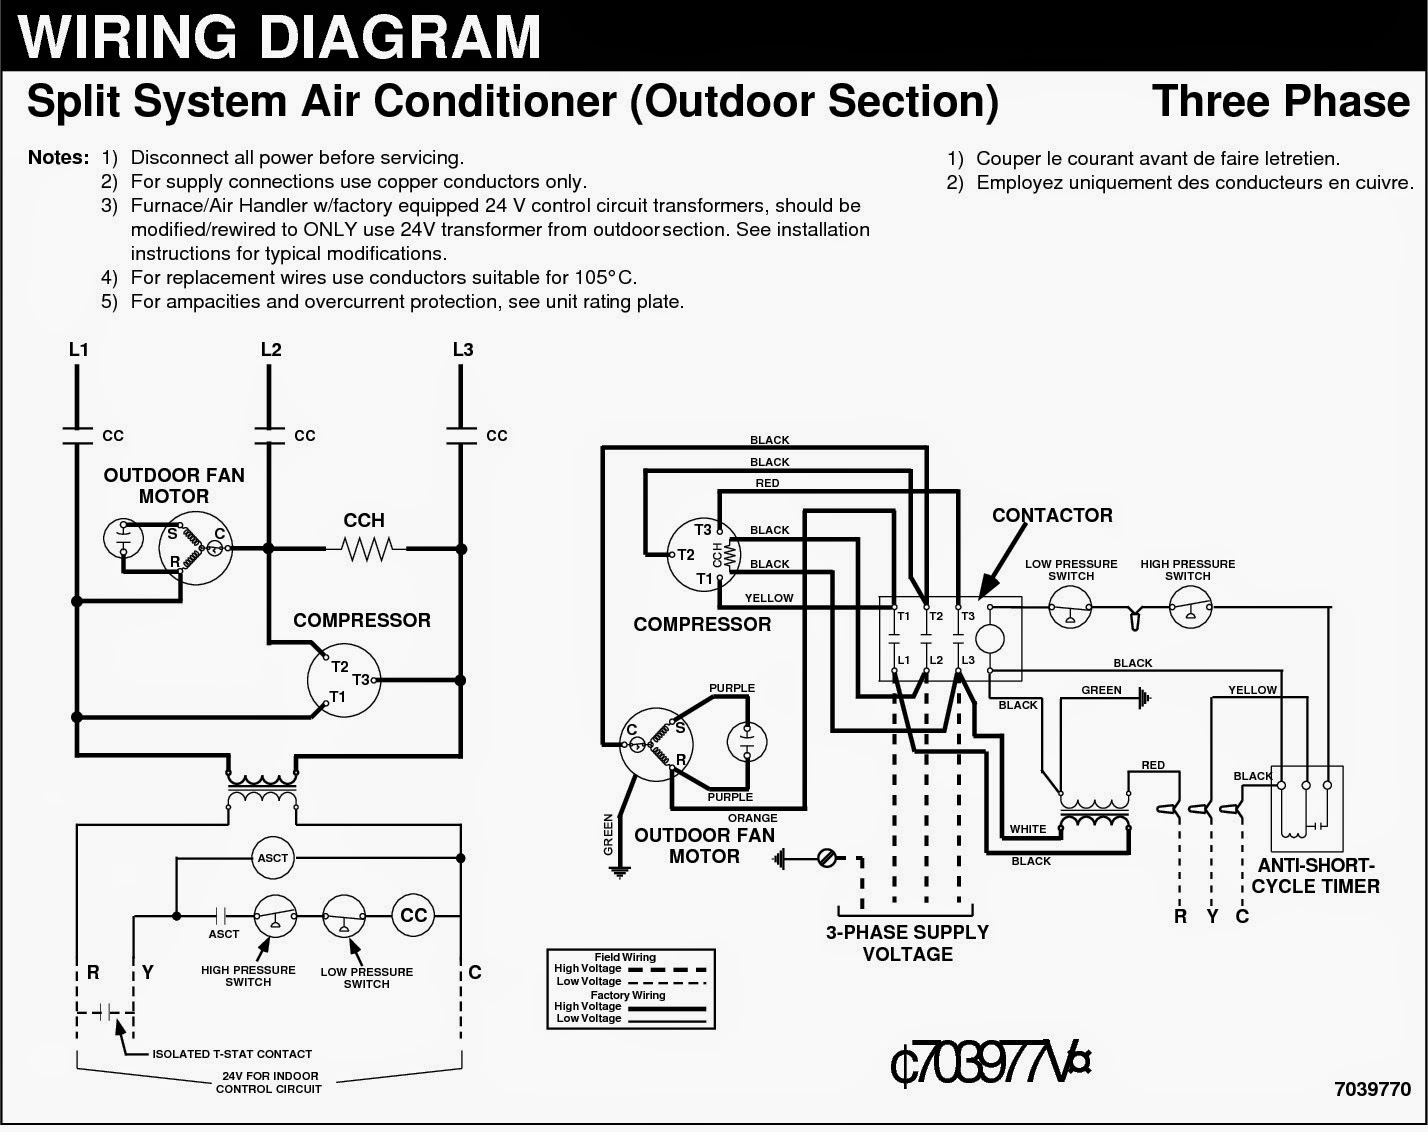 3+phase electrical wiring diagrams for air conditioning systems part two split ac wiring diagram at eliteediting.co